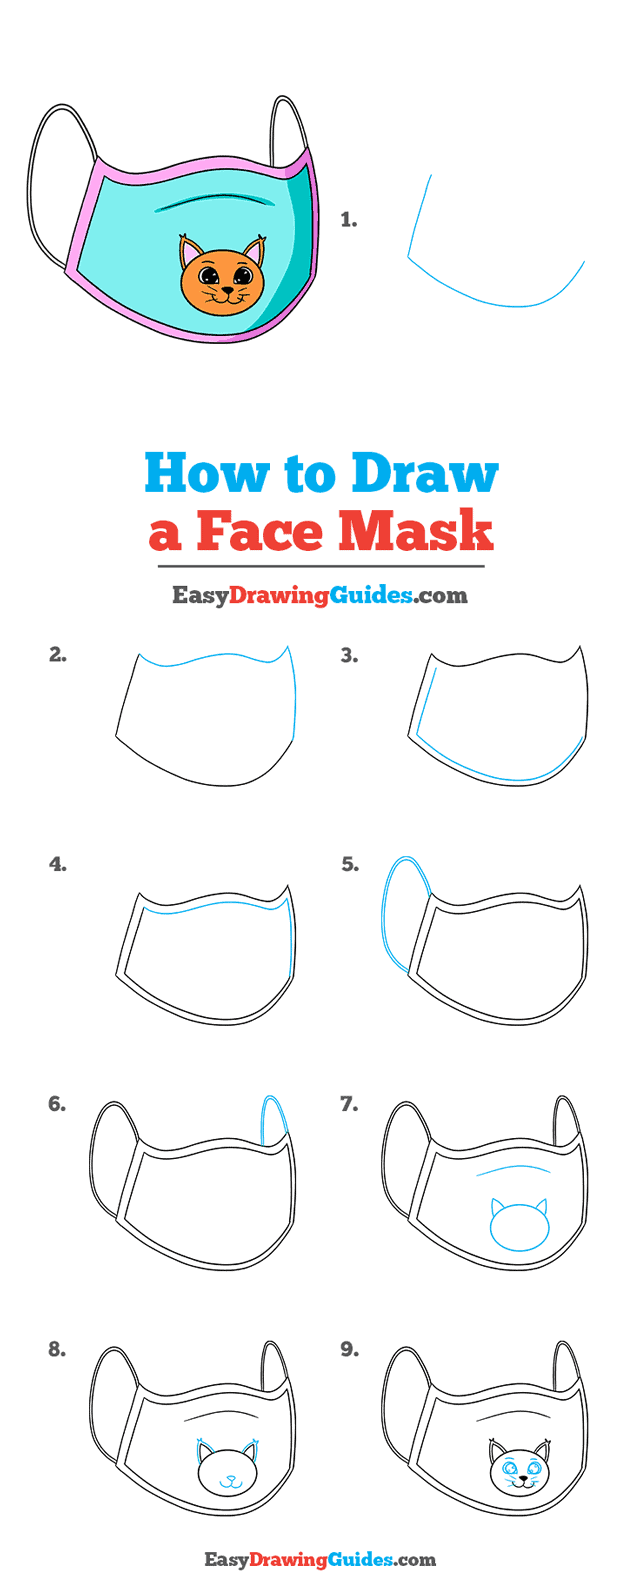 How to Draw a Face Mask Step by Step Tutorial Image